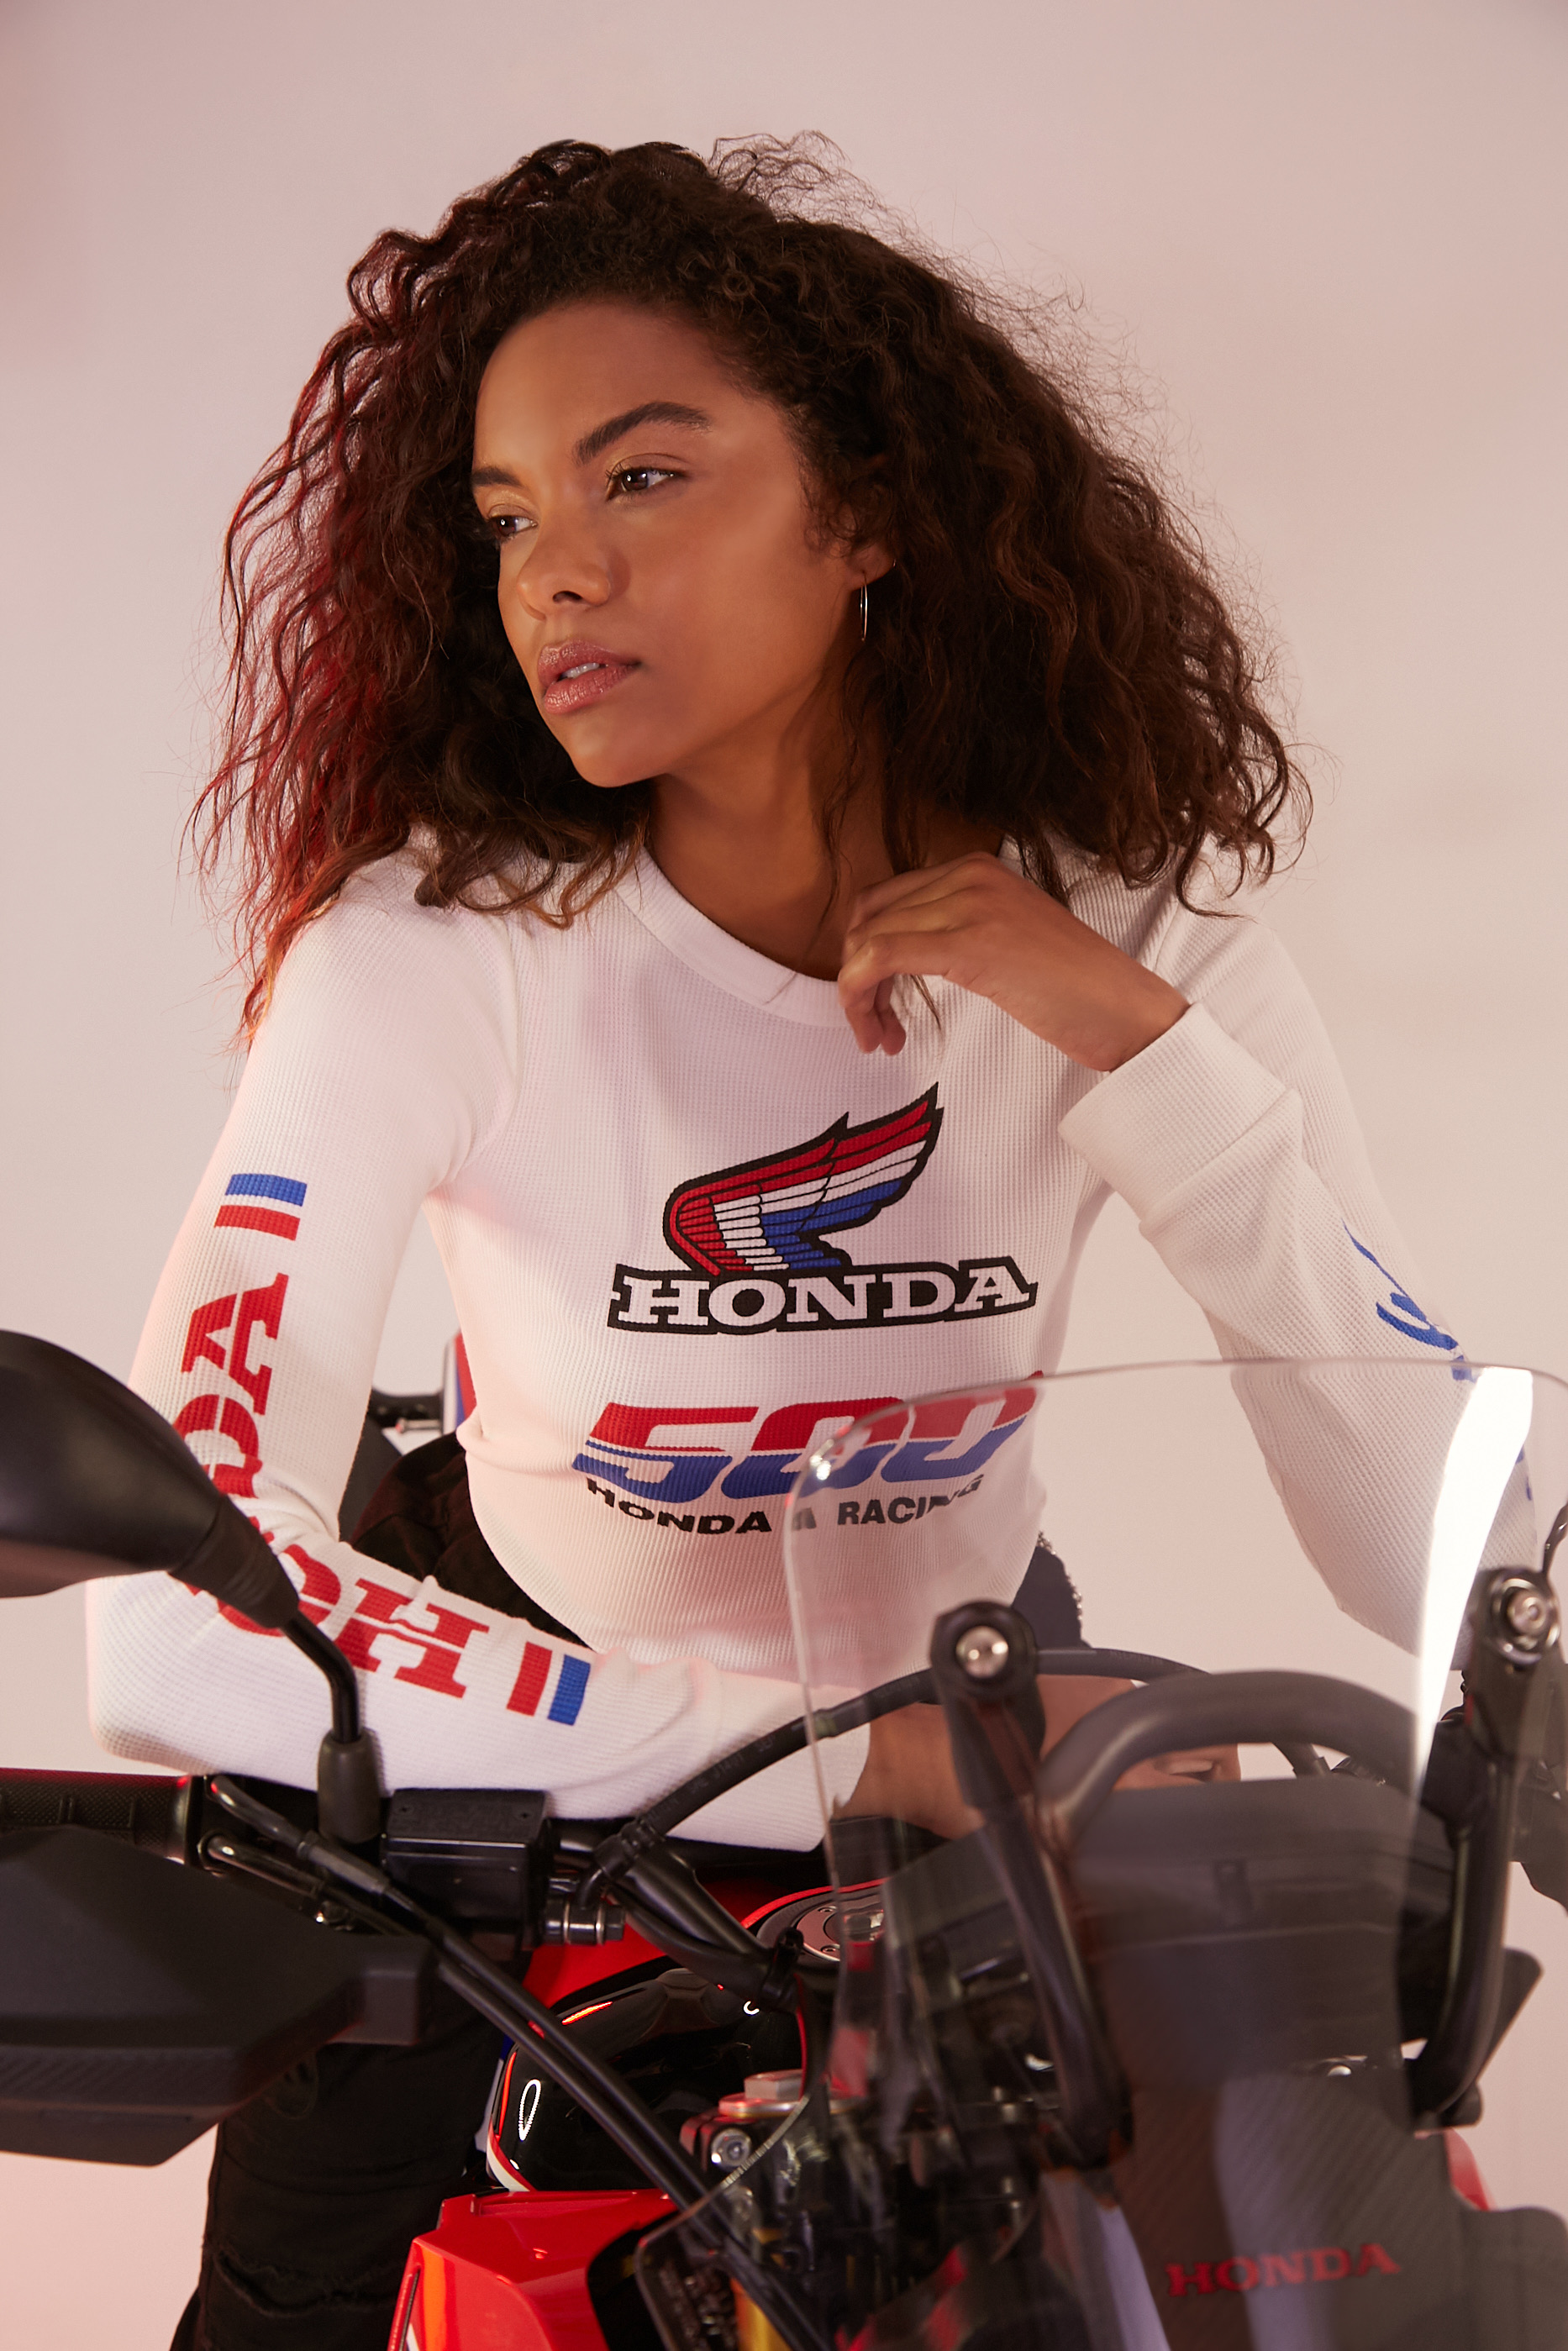 , Honda, Forever 21 launch vintage racing-inspired clothing line, ClassicCars.com Journal